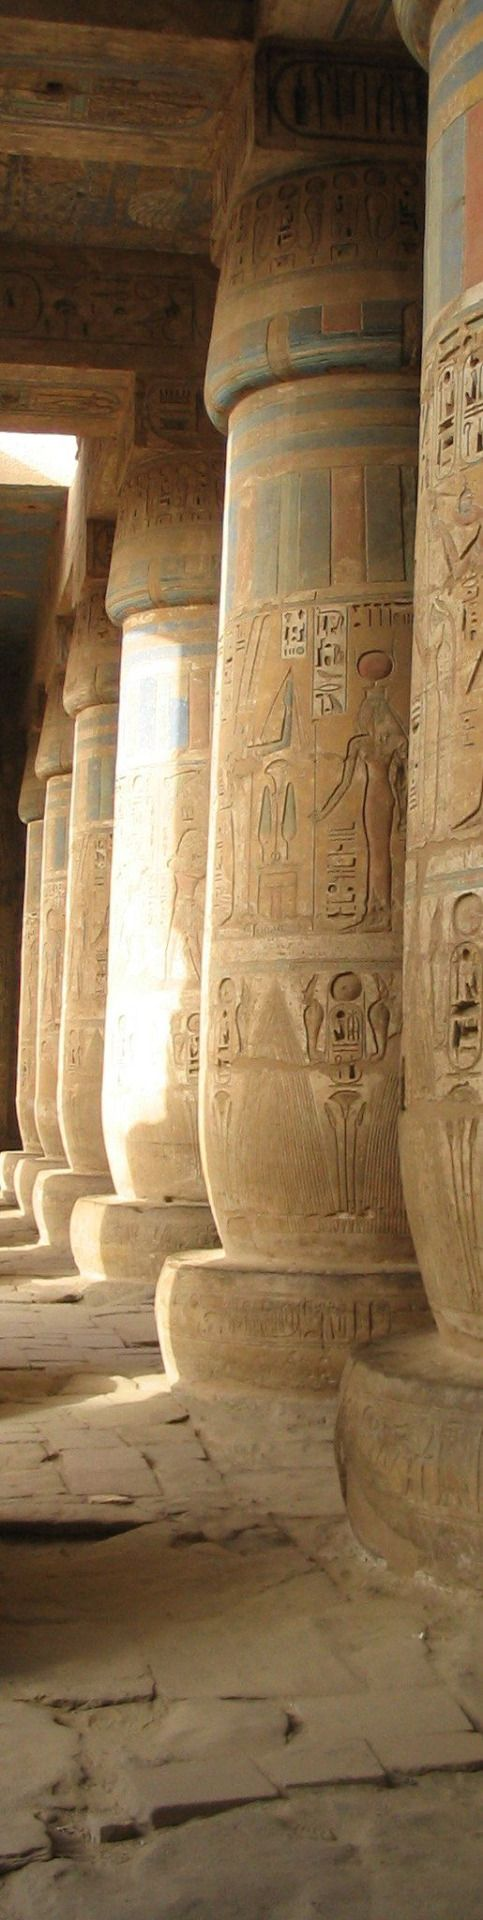 best ideas about ancient ian architecture columns of an ancient ian temple in luxor